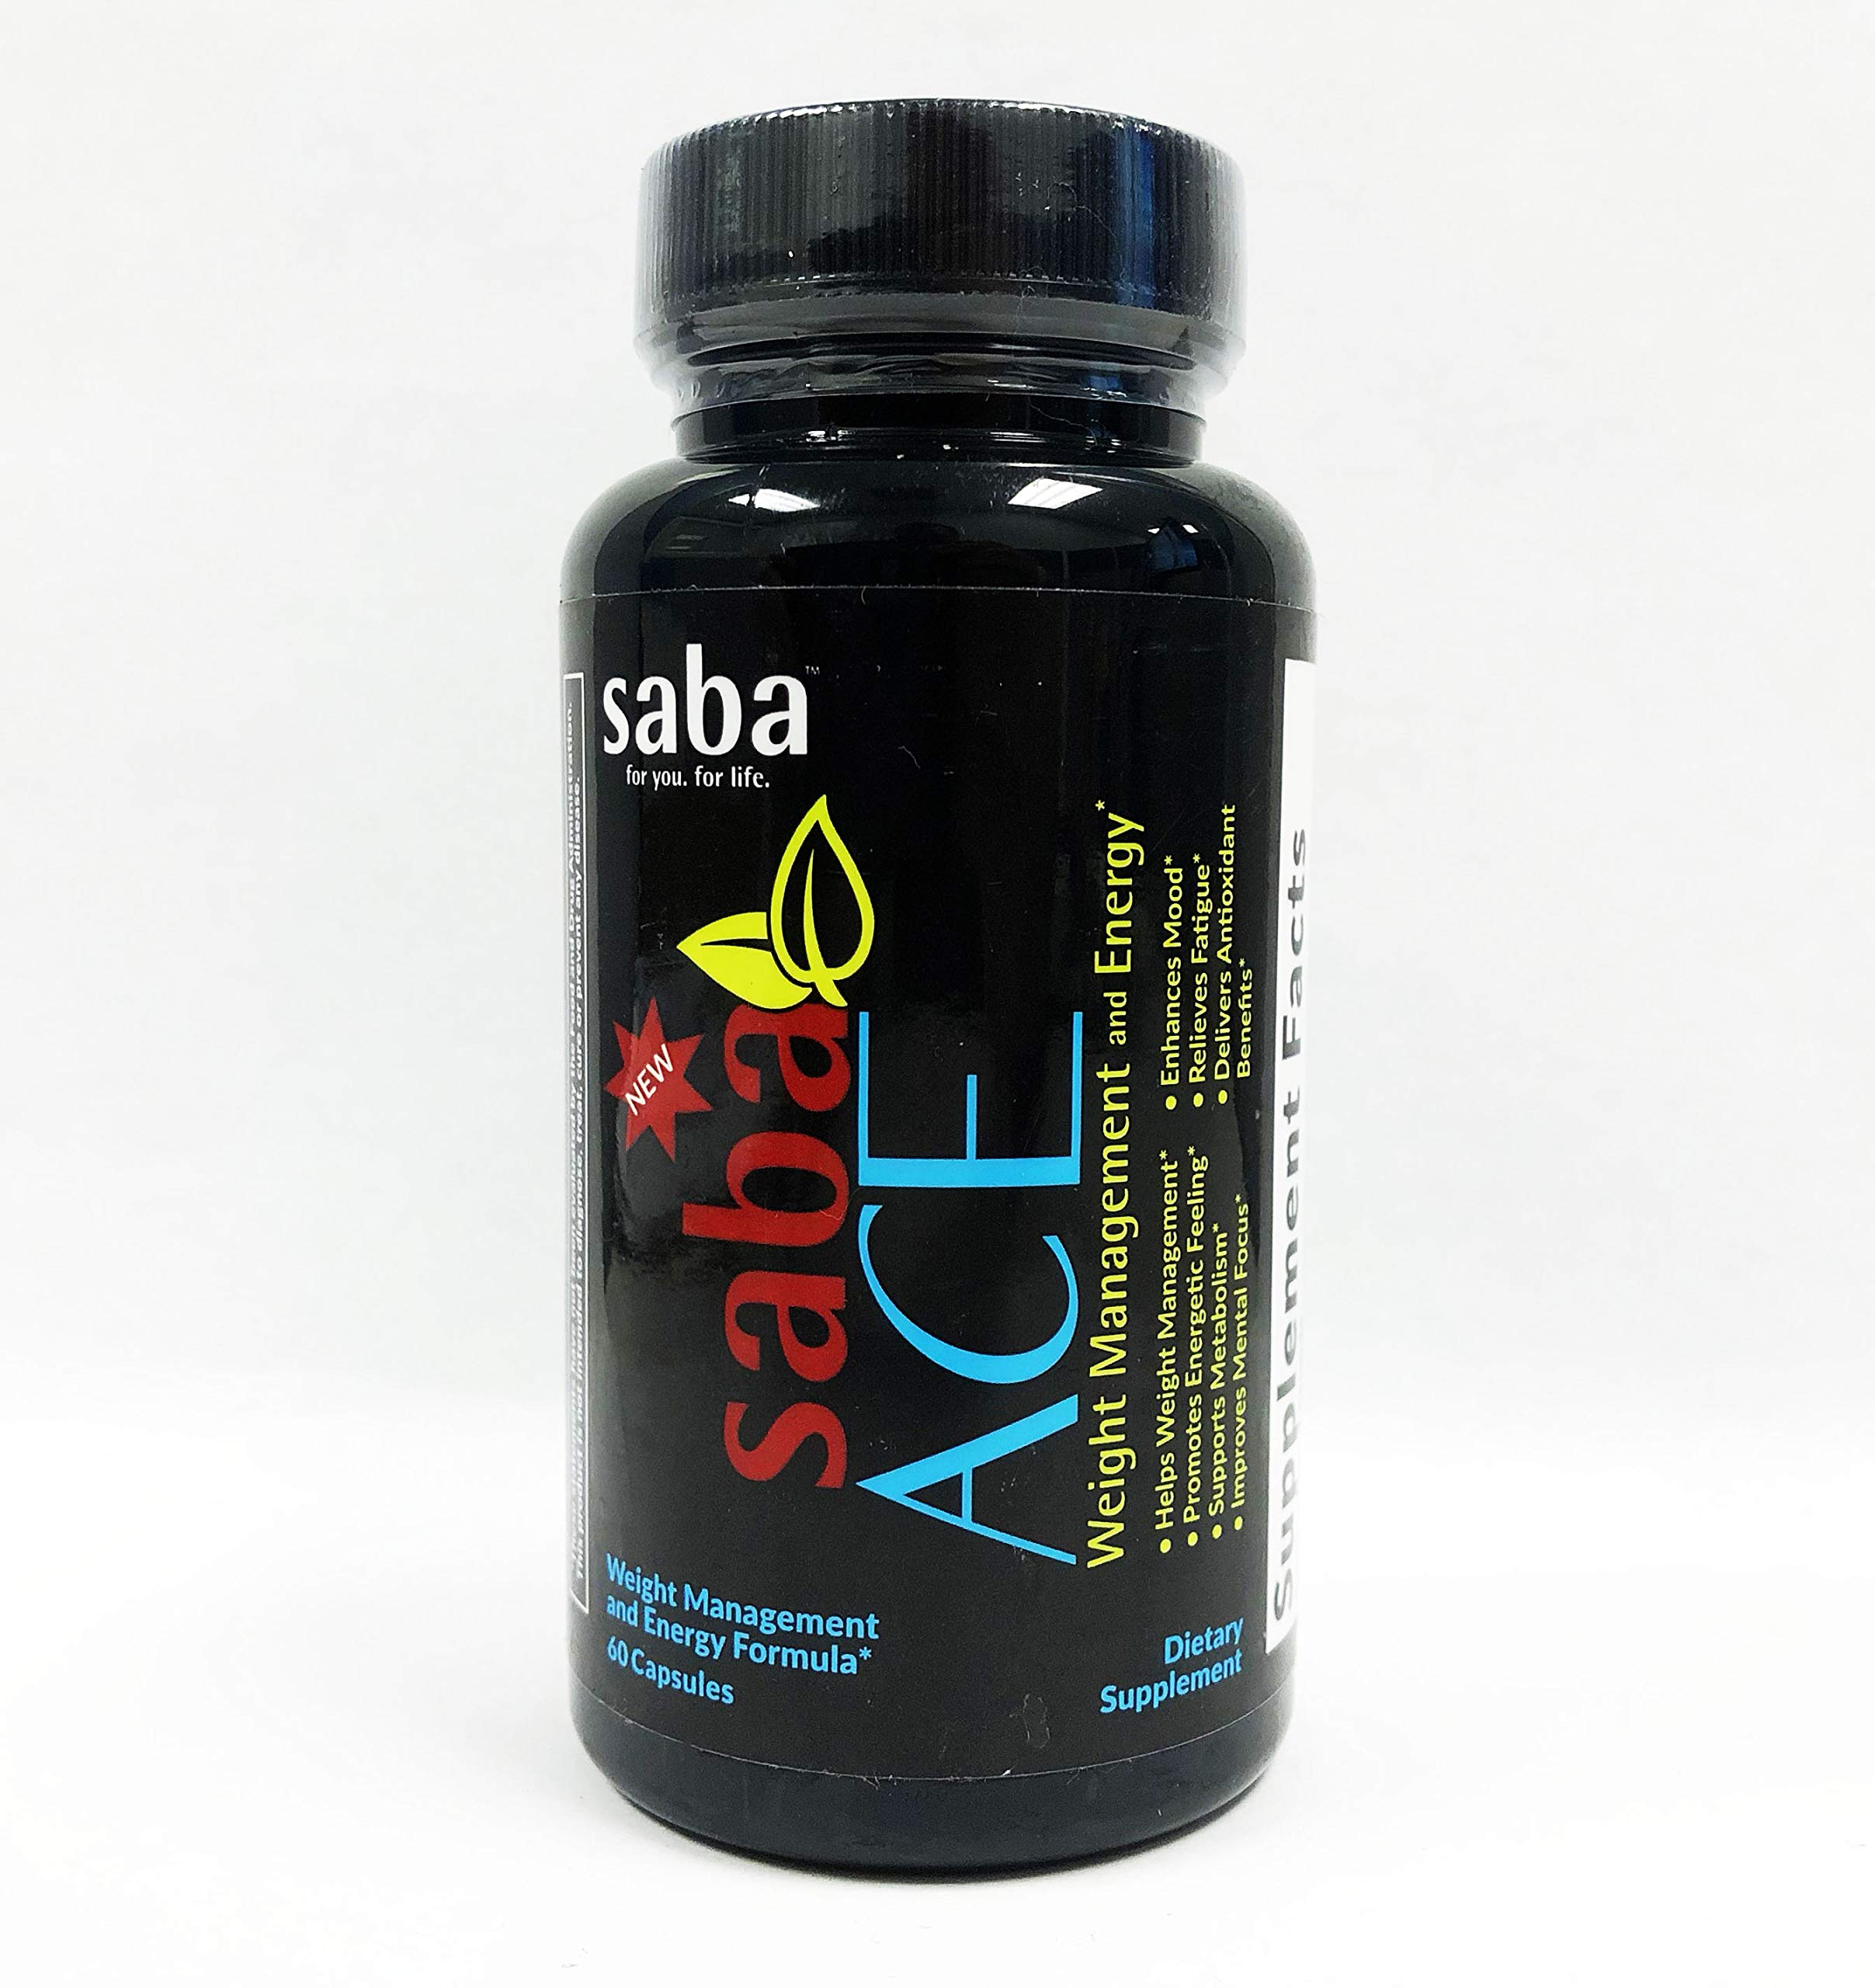 Saba Appetite Control and Energy DMAA Free Dietary Supplement, 60 Capsules